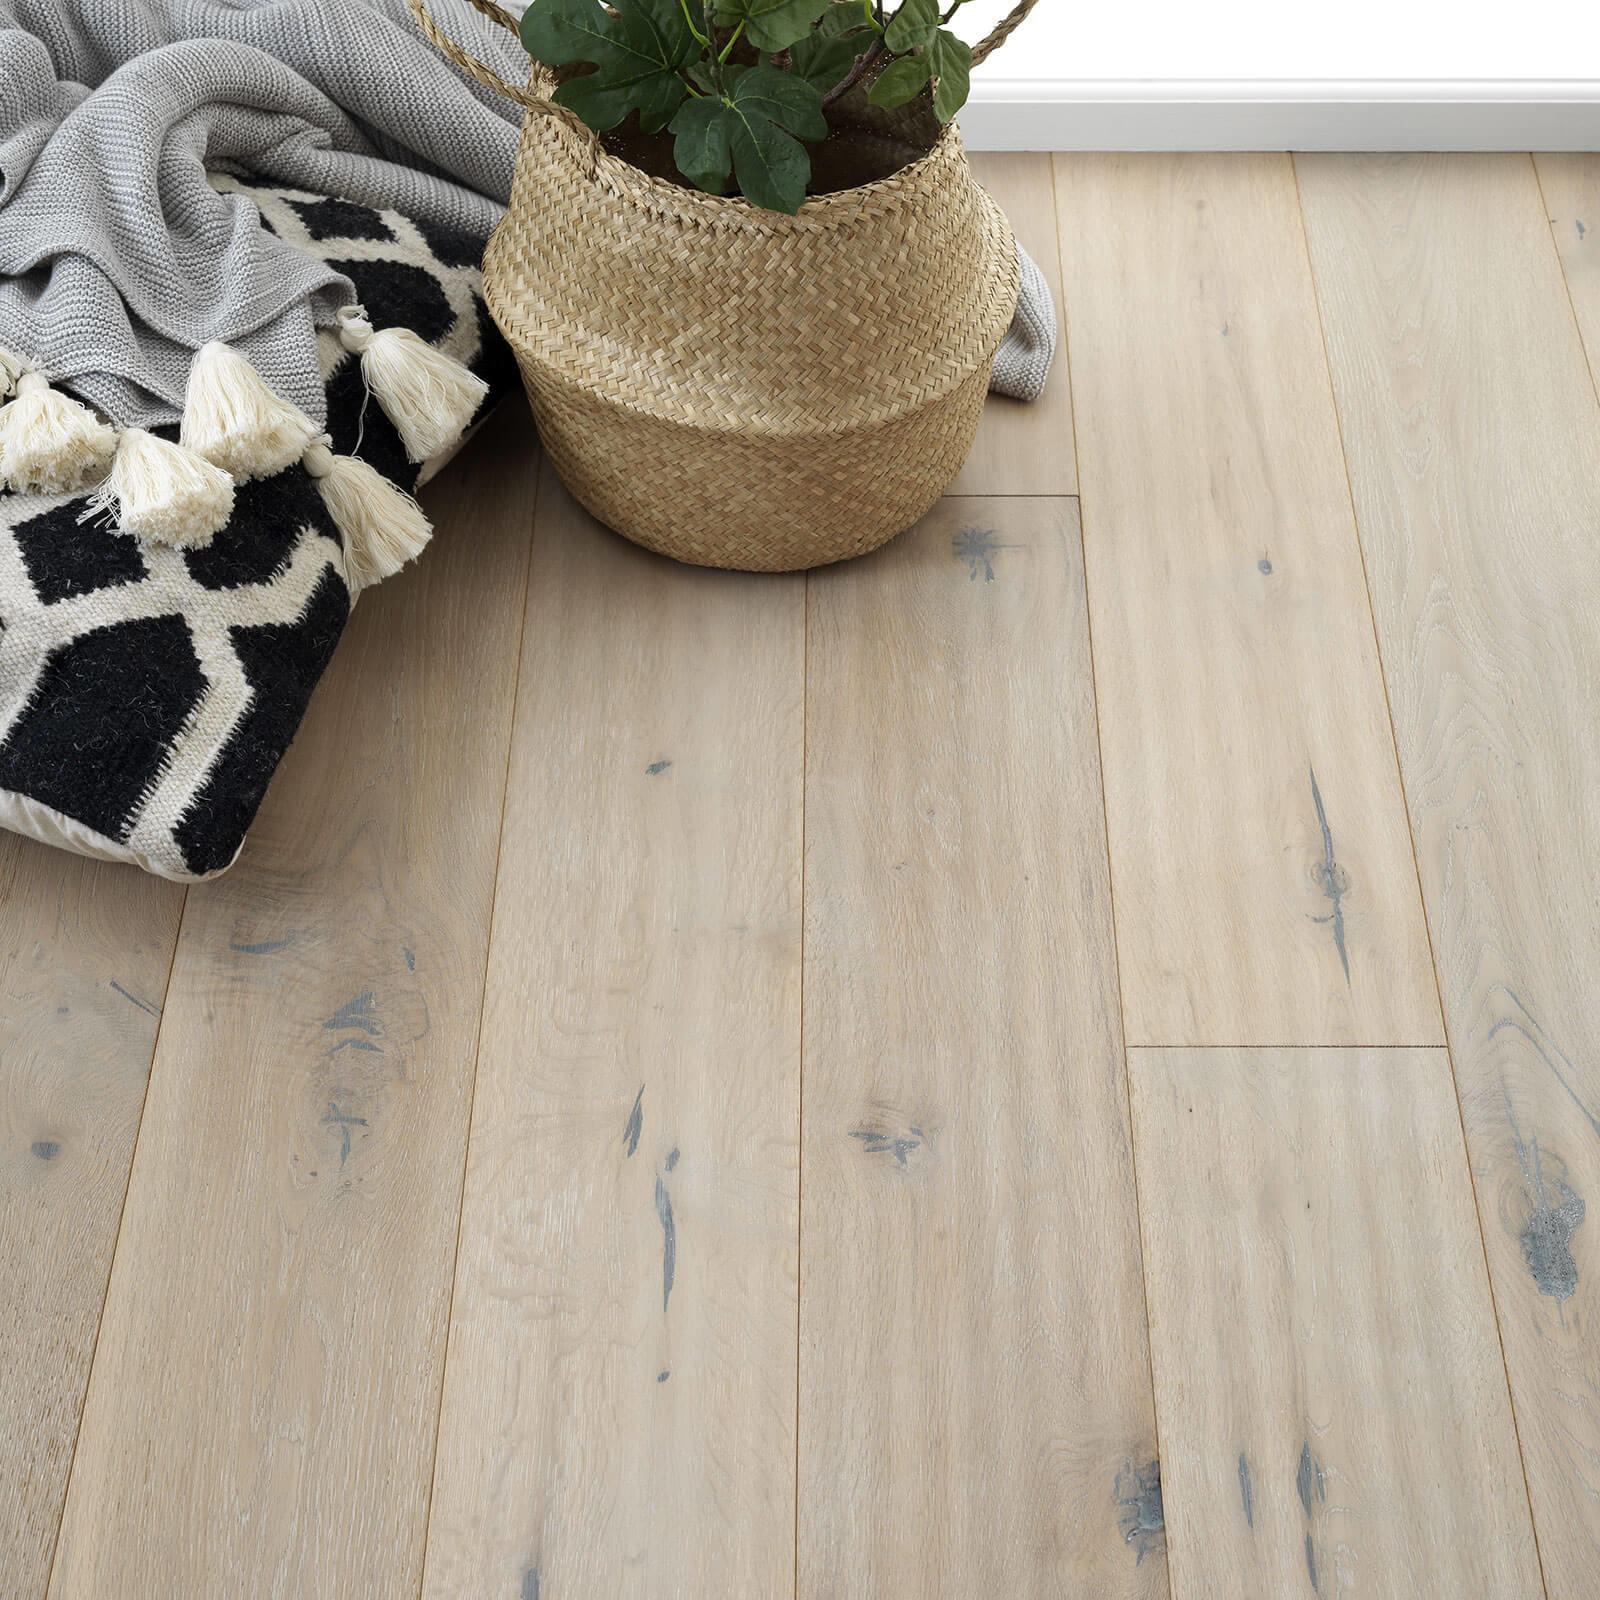 Woodpecker Berkeley Distressed Grey Oak Oiled 38-BAG-001 Engineered Wood Flooring